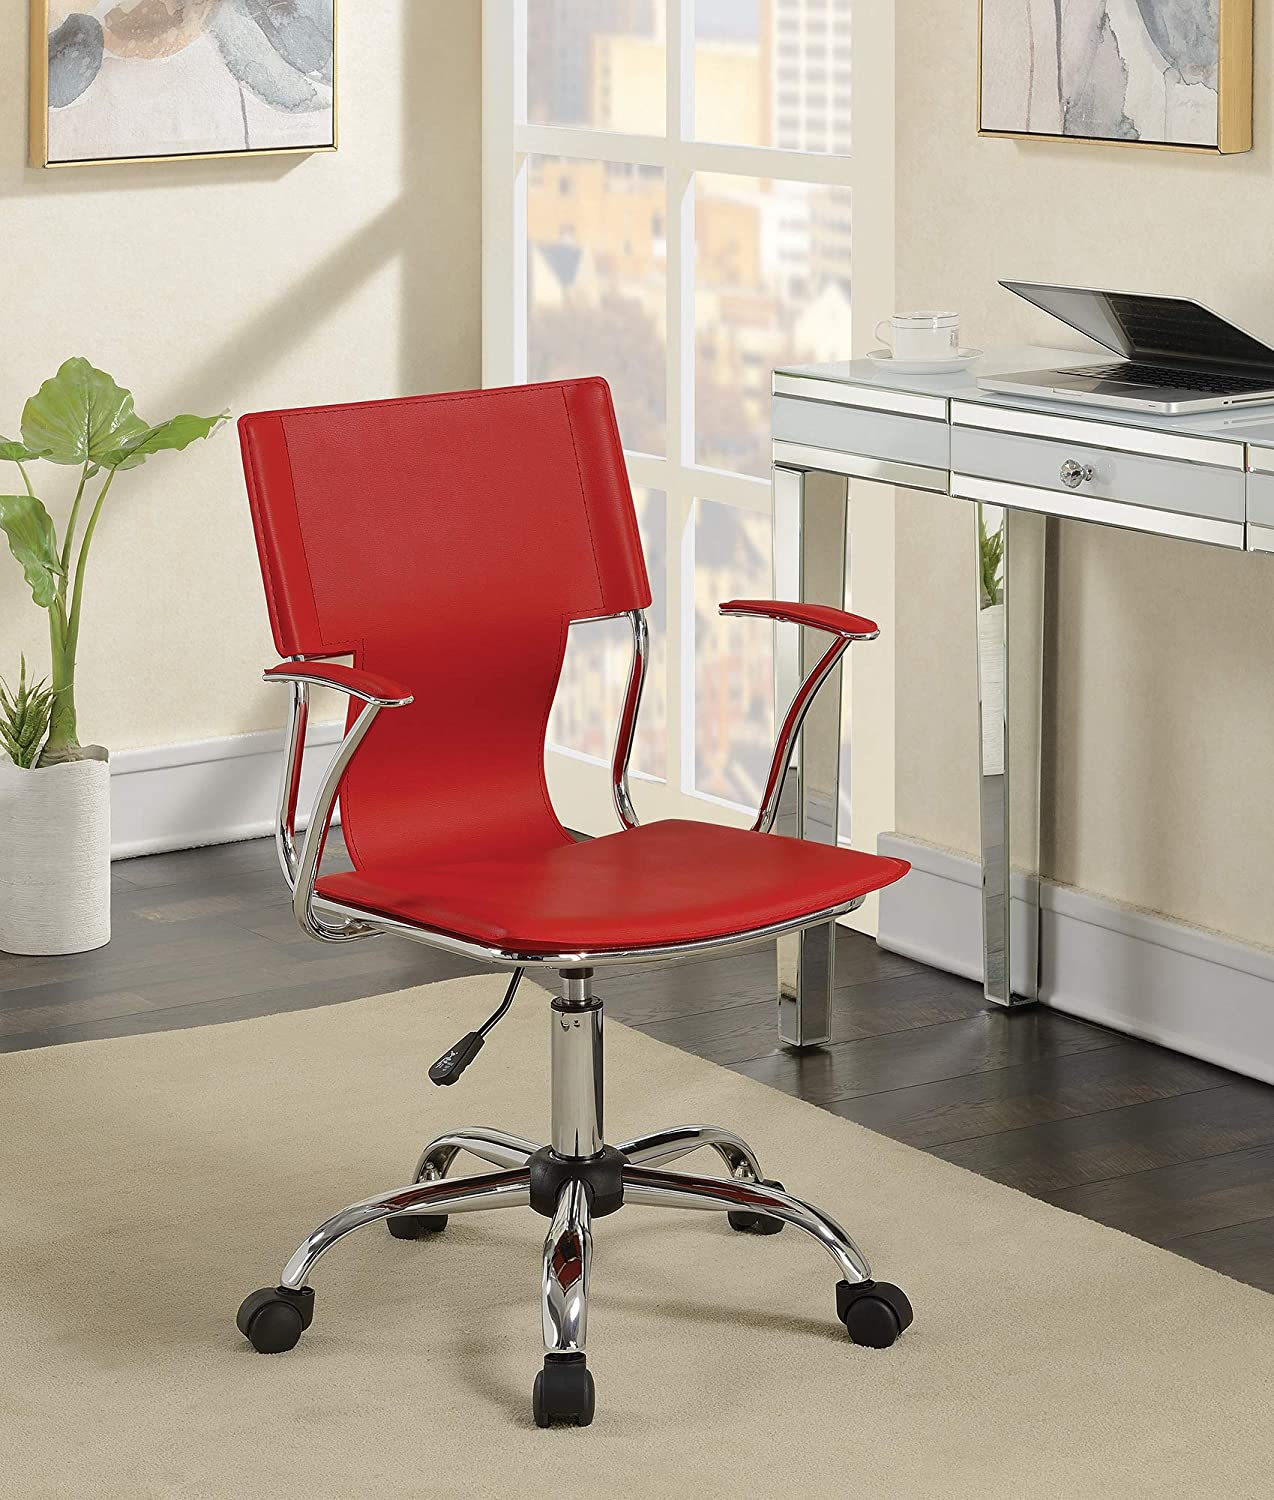 Benzara BM159149 Office Chairs Red